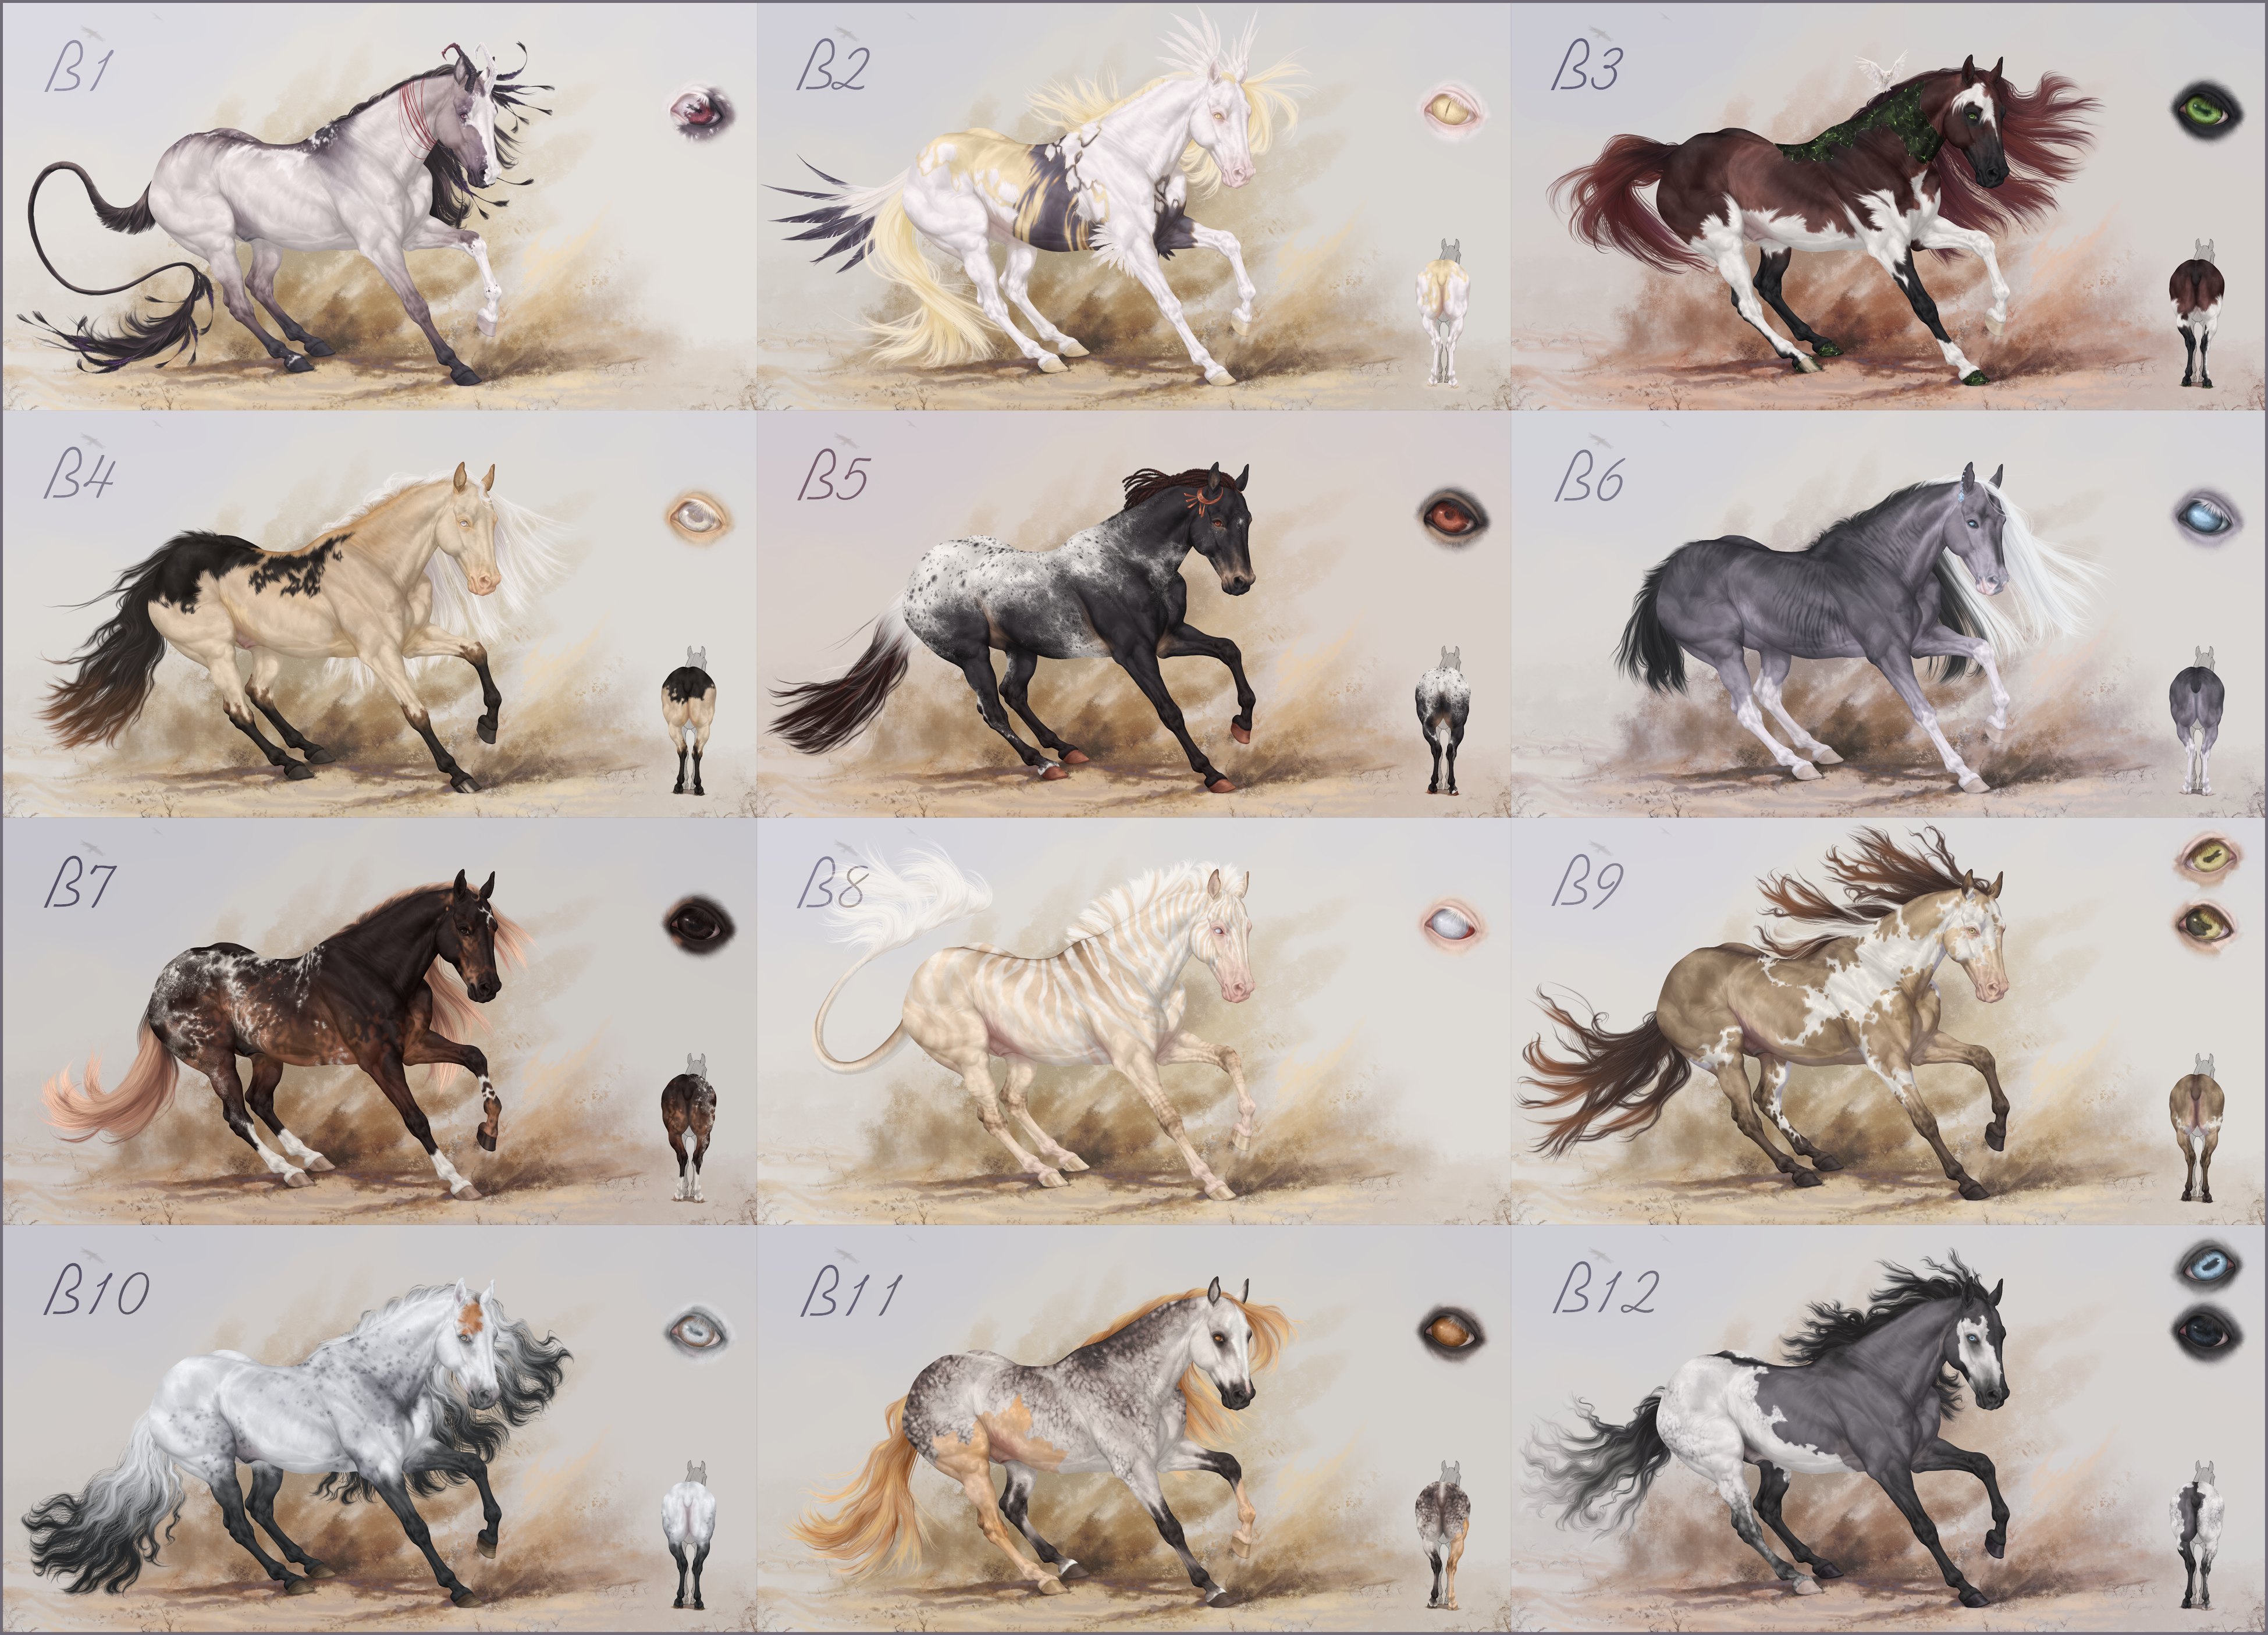 [CLOSED] Quarter horse| Batch B| Auction